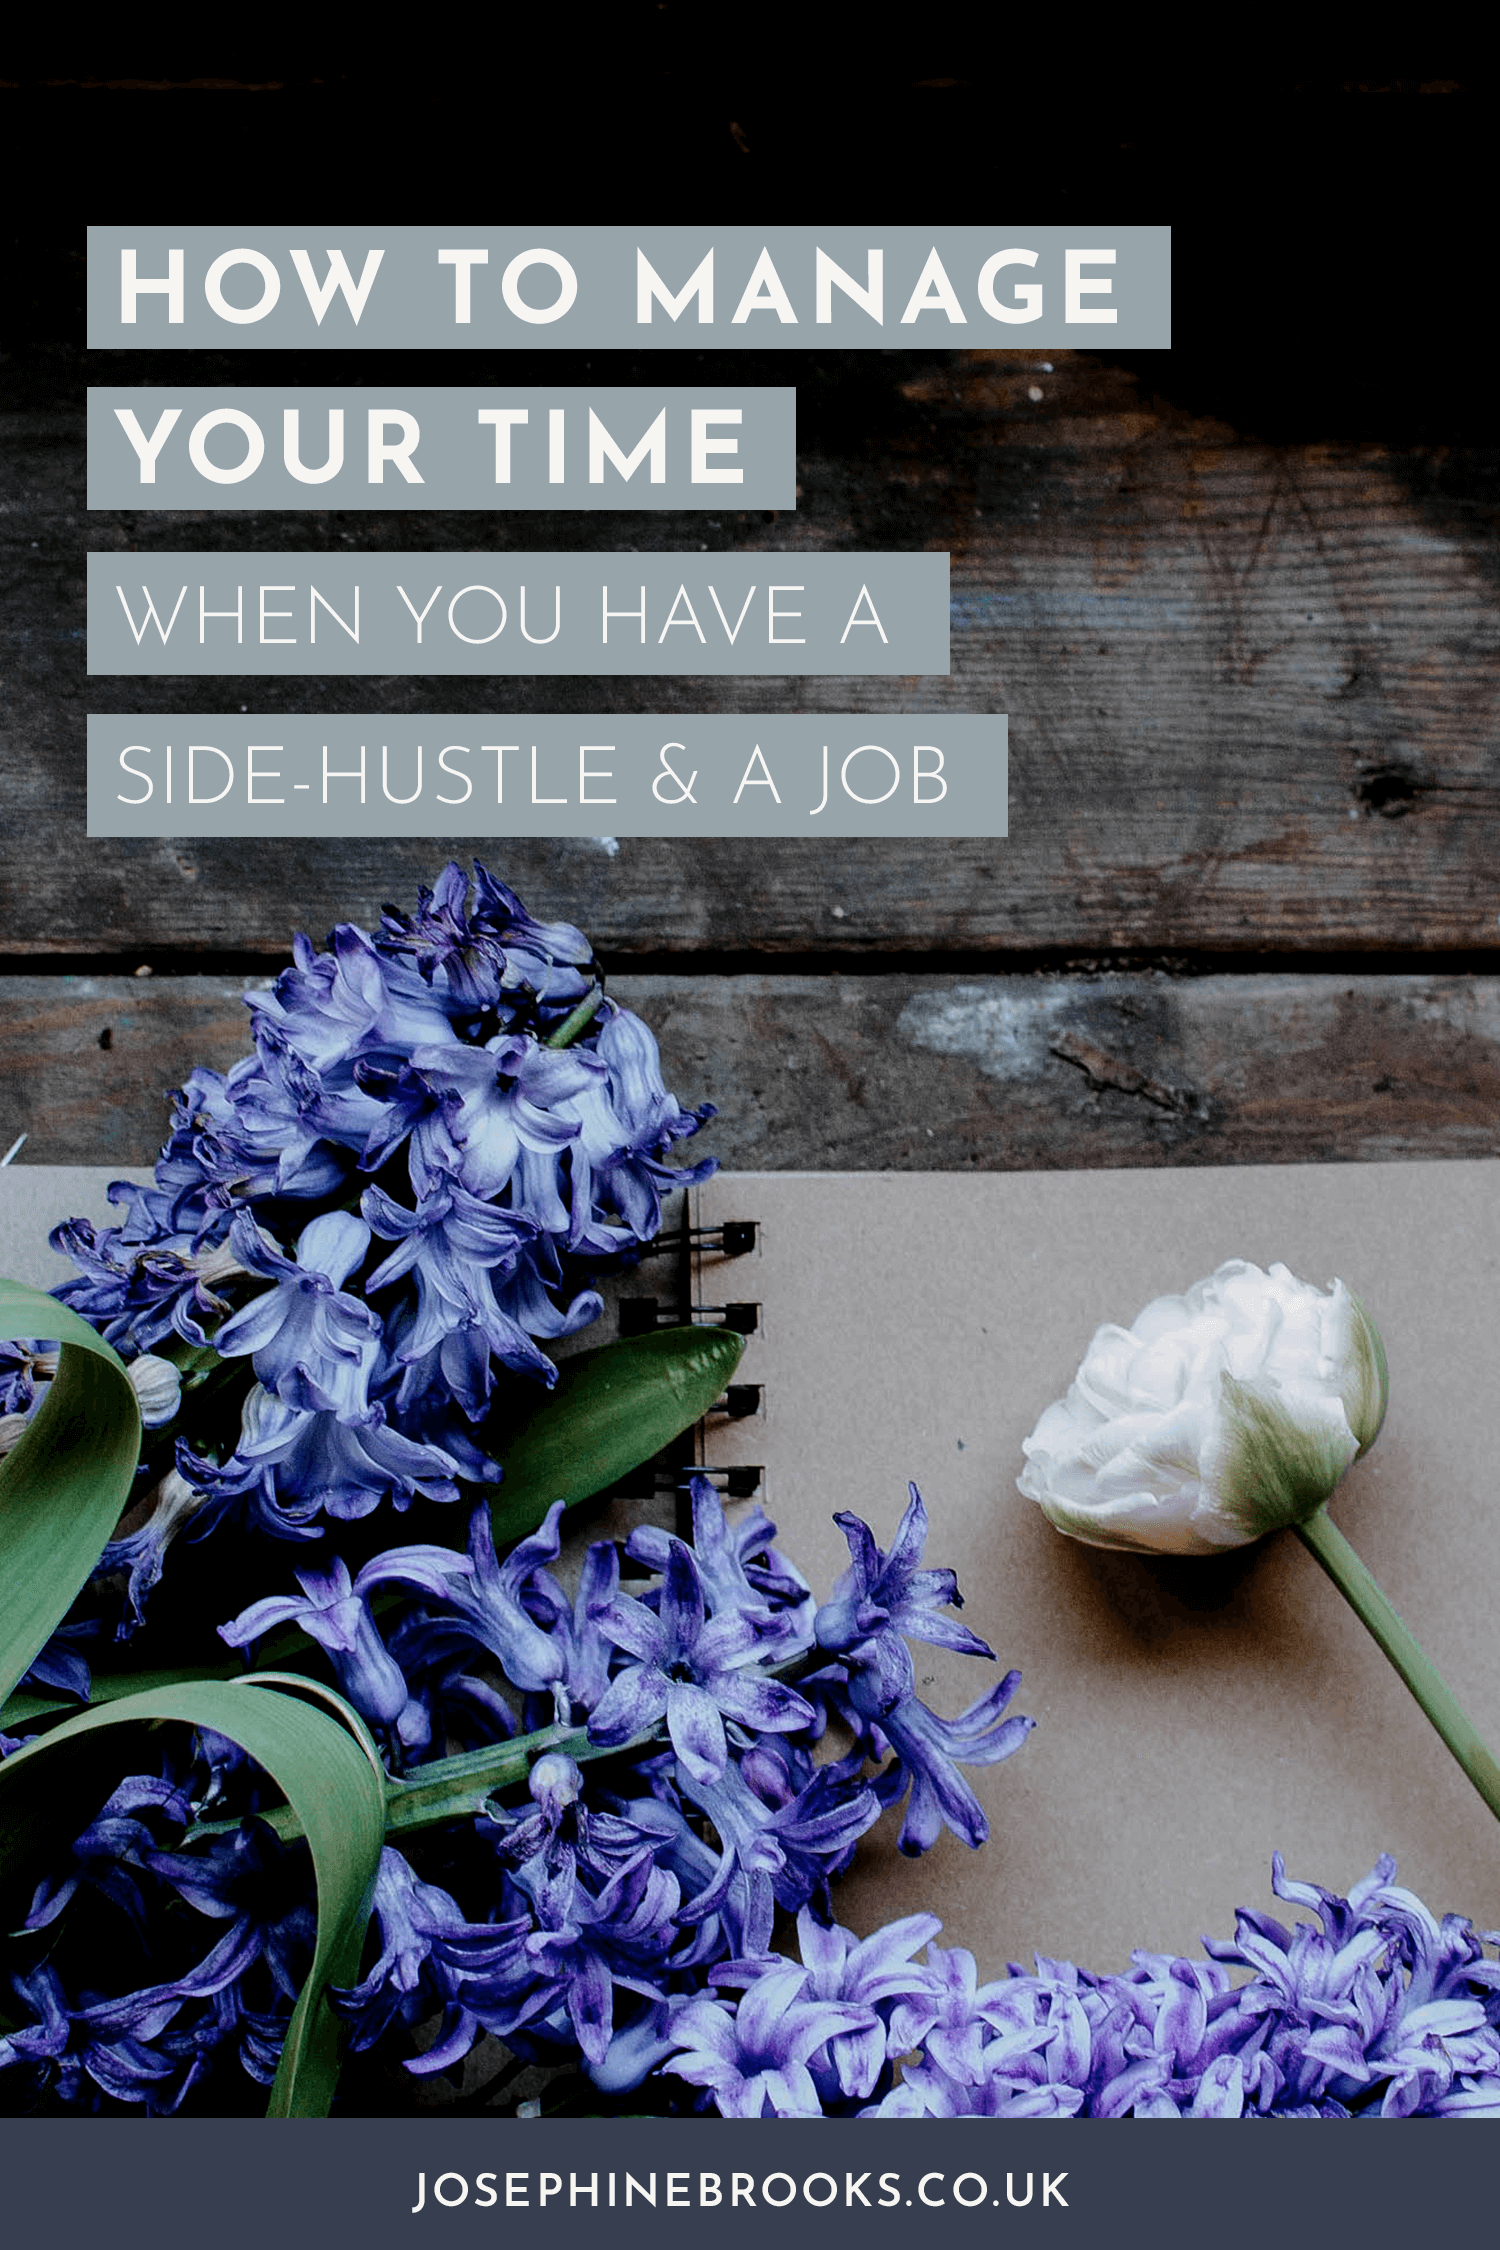 How to manage your time when you have a creative side hustle and a job, Multi-hyphen career time management tips, Creative time management tips, Creative business time management tips, Juggling a business and a job, work life balance tips